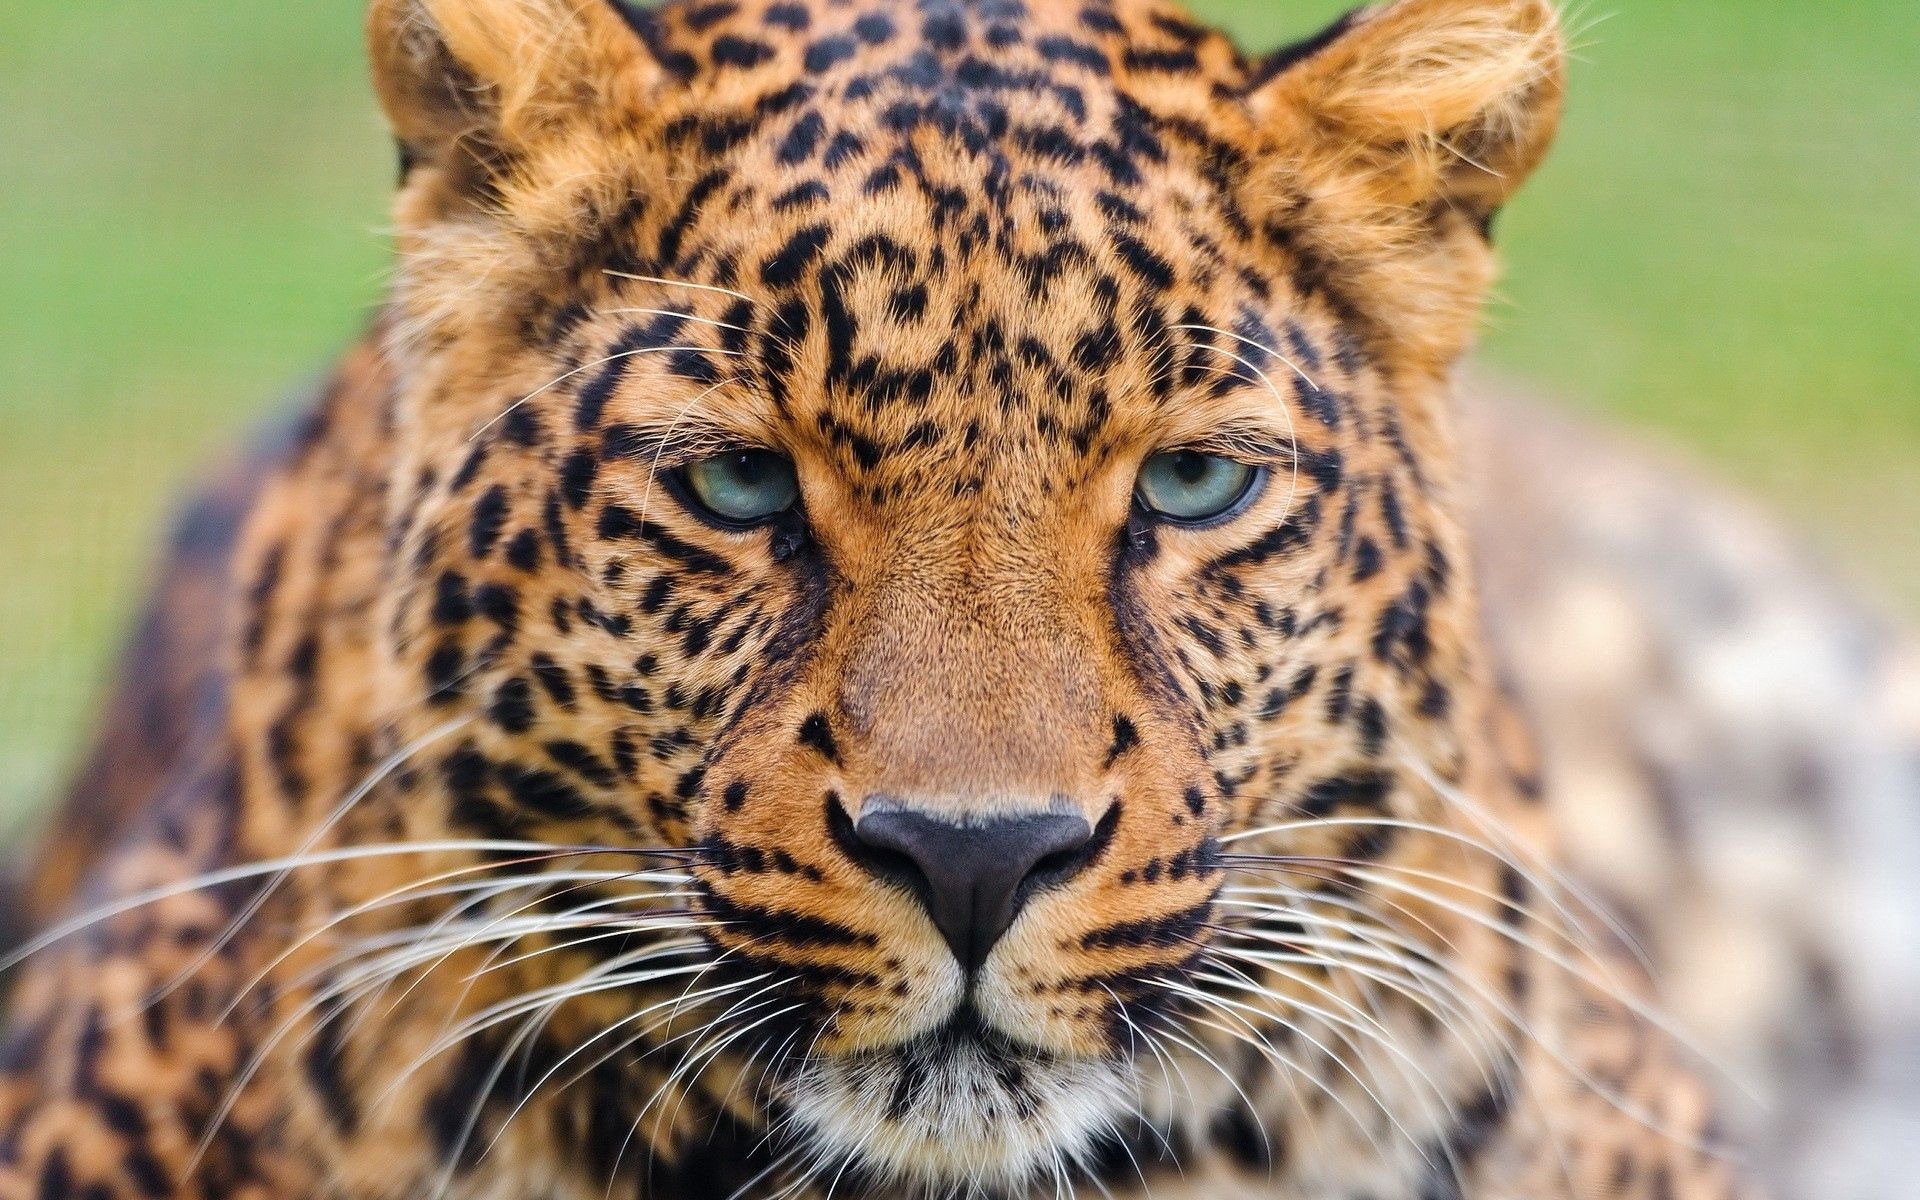 146672 download wallpaper Animals, Leopard, Muzzle, Sight, Opinion, Big Cat screensavers and pictures for free